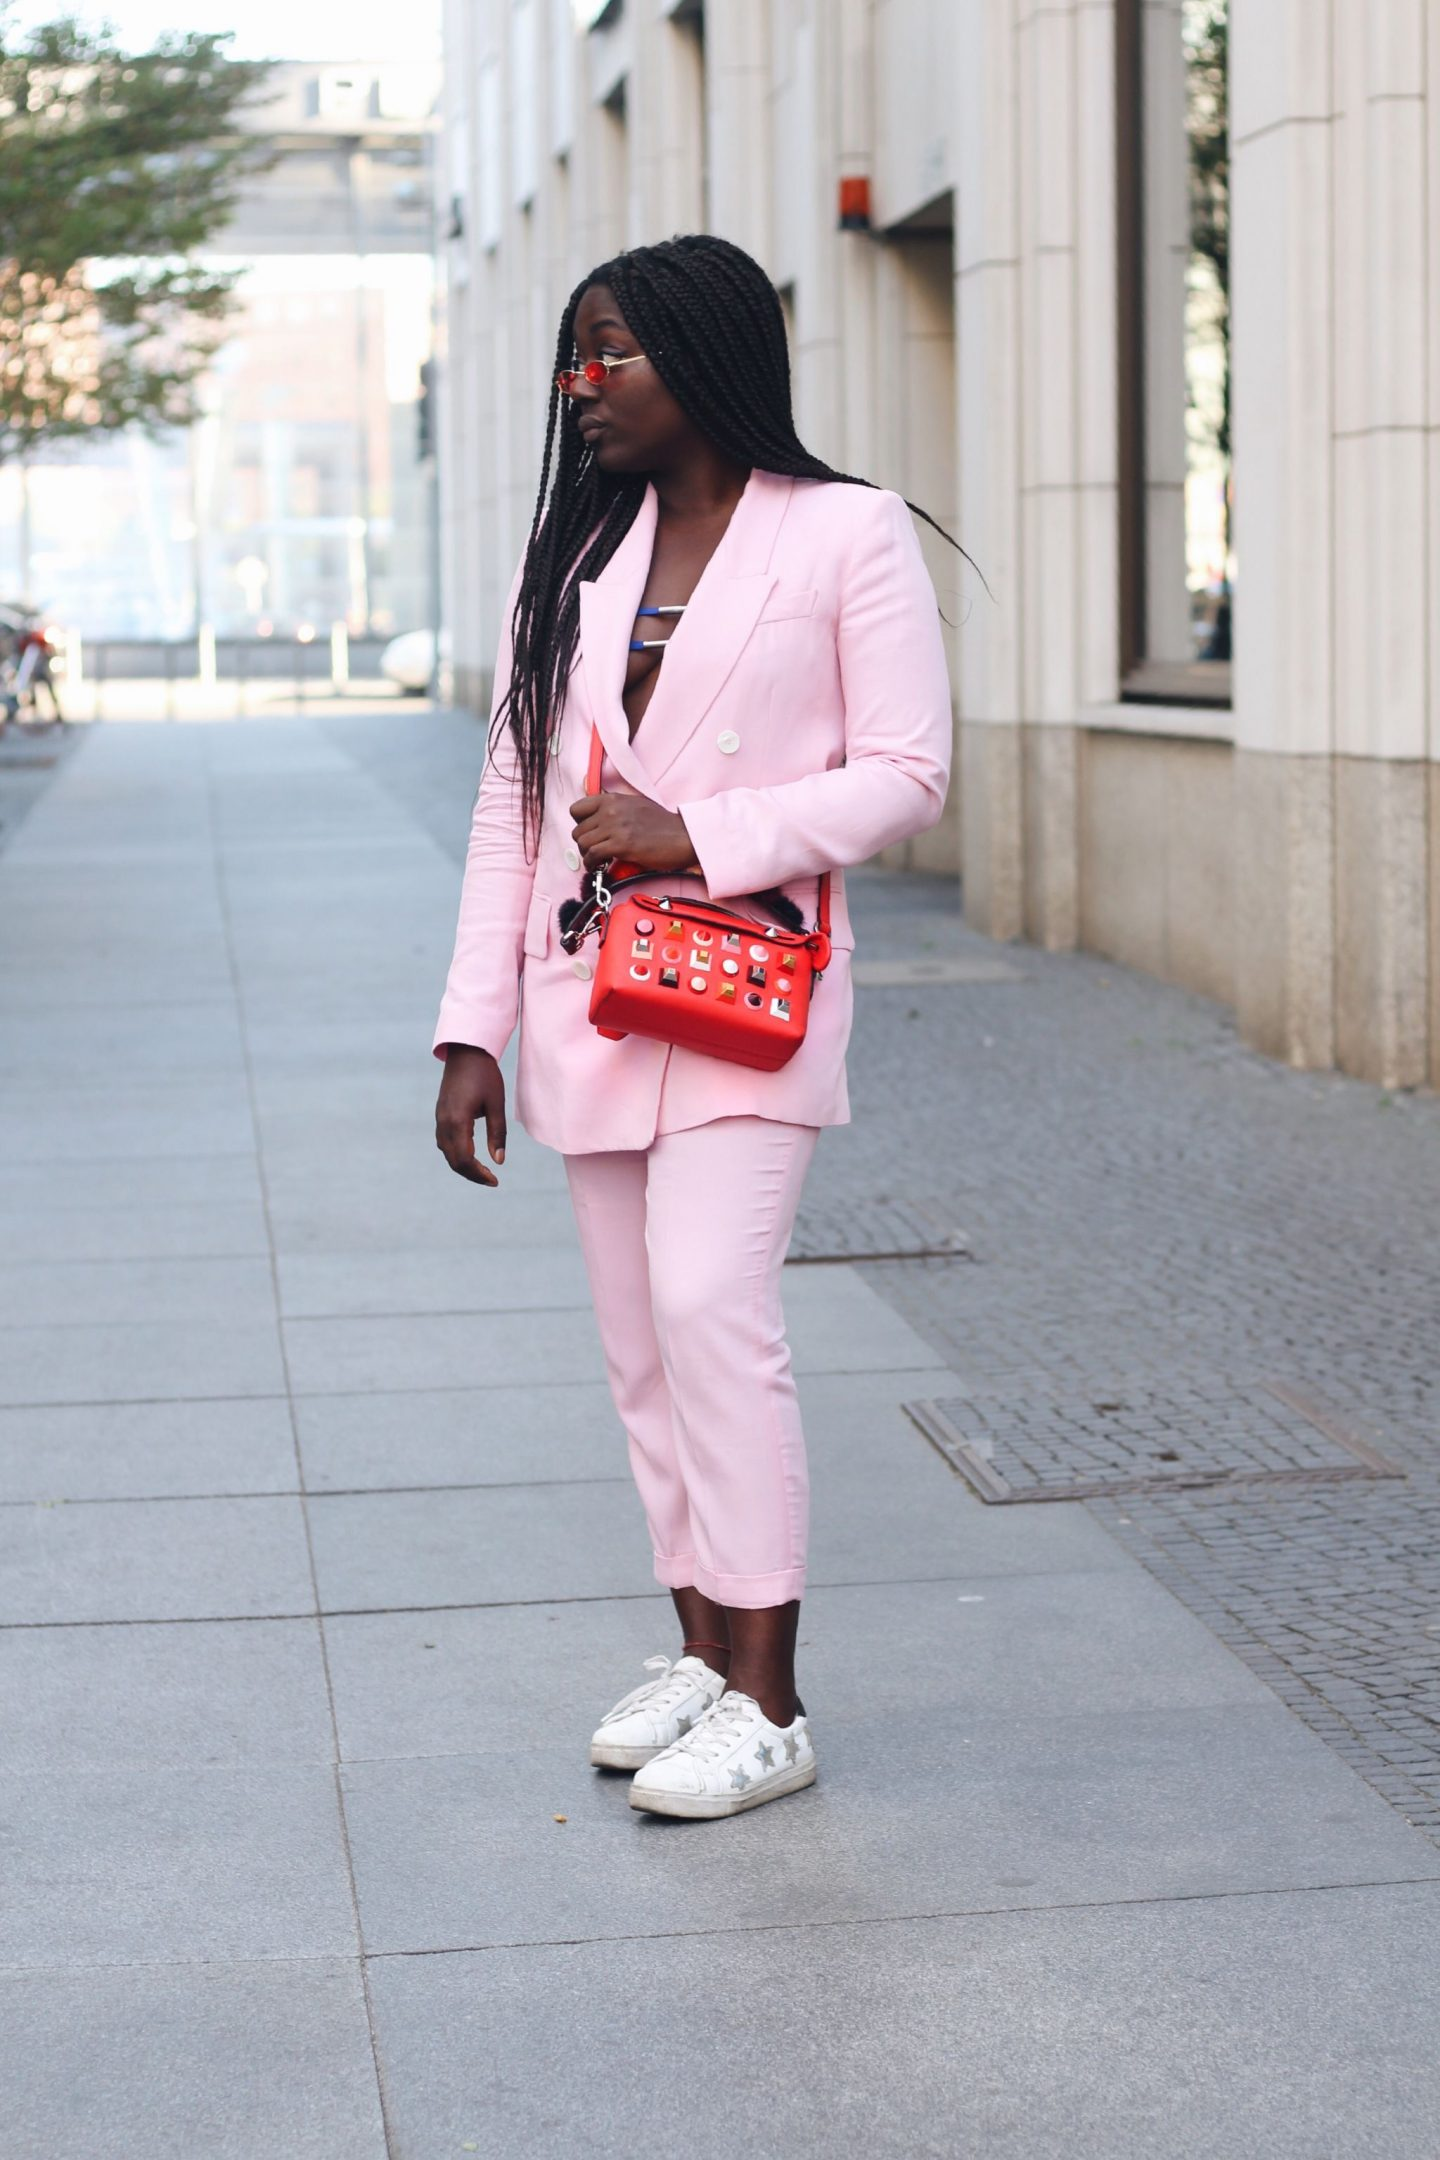 Lois_Opoku_pink_suit_fendi_by_the_way_bag_fasion_week_street_style_lisforlois_6